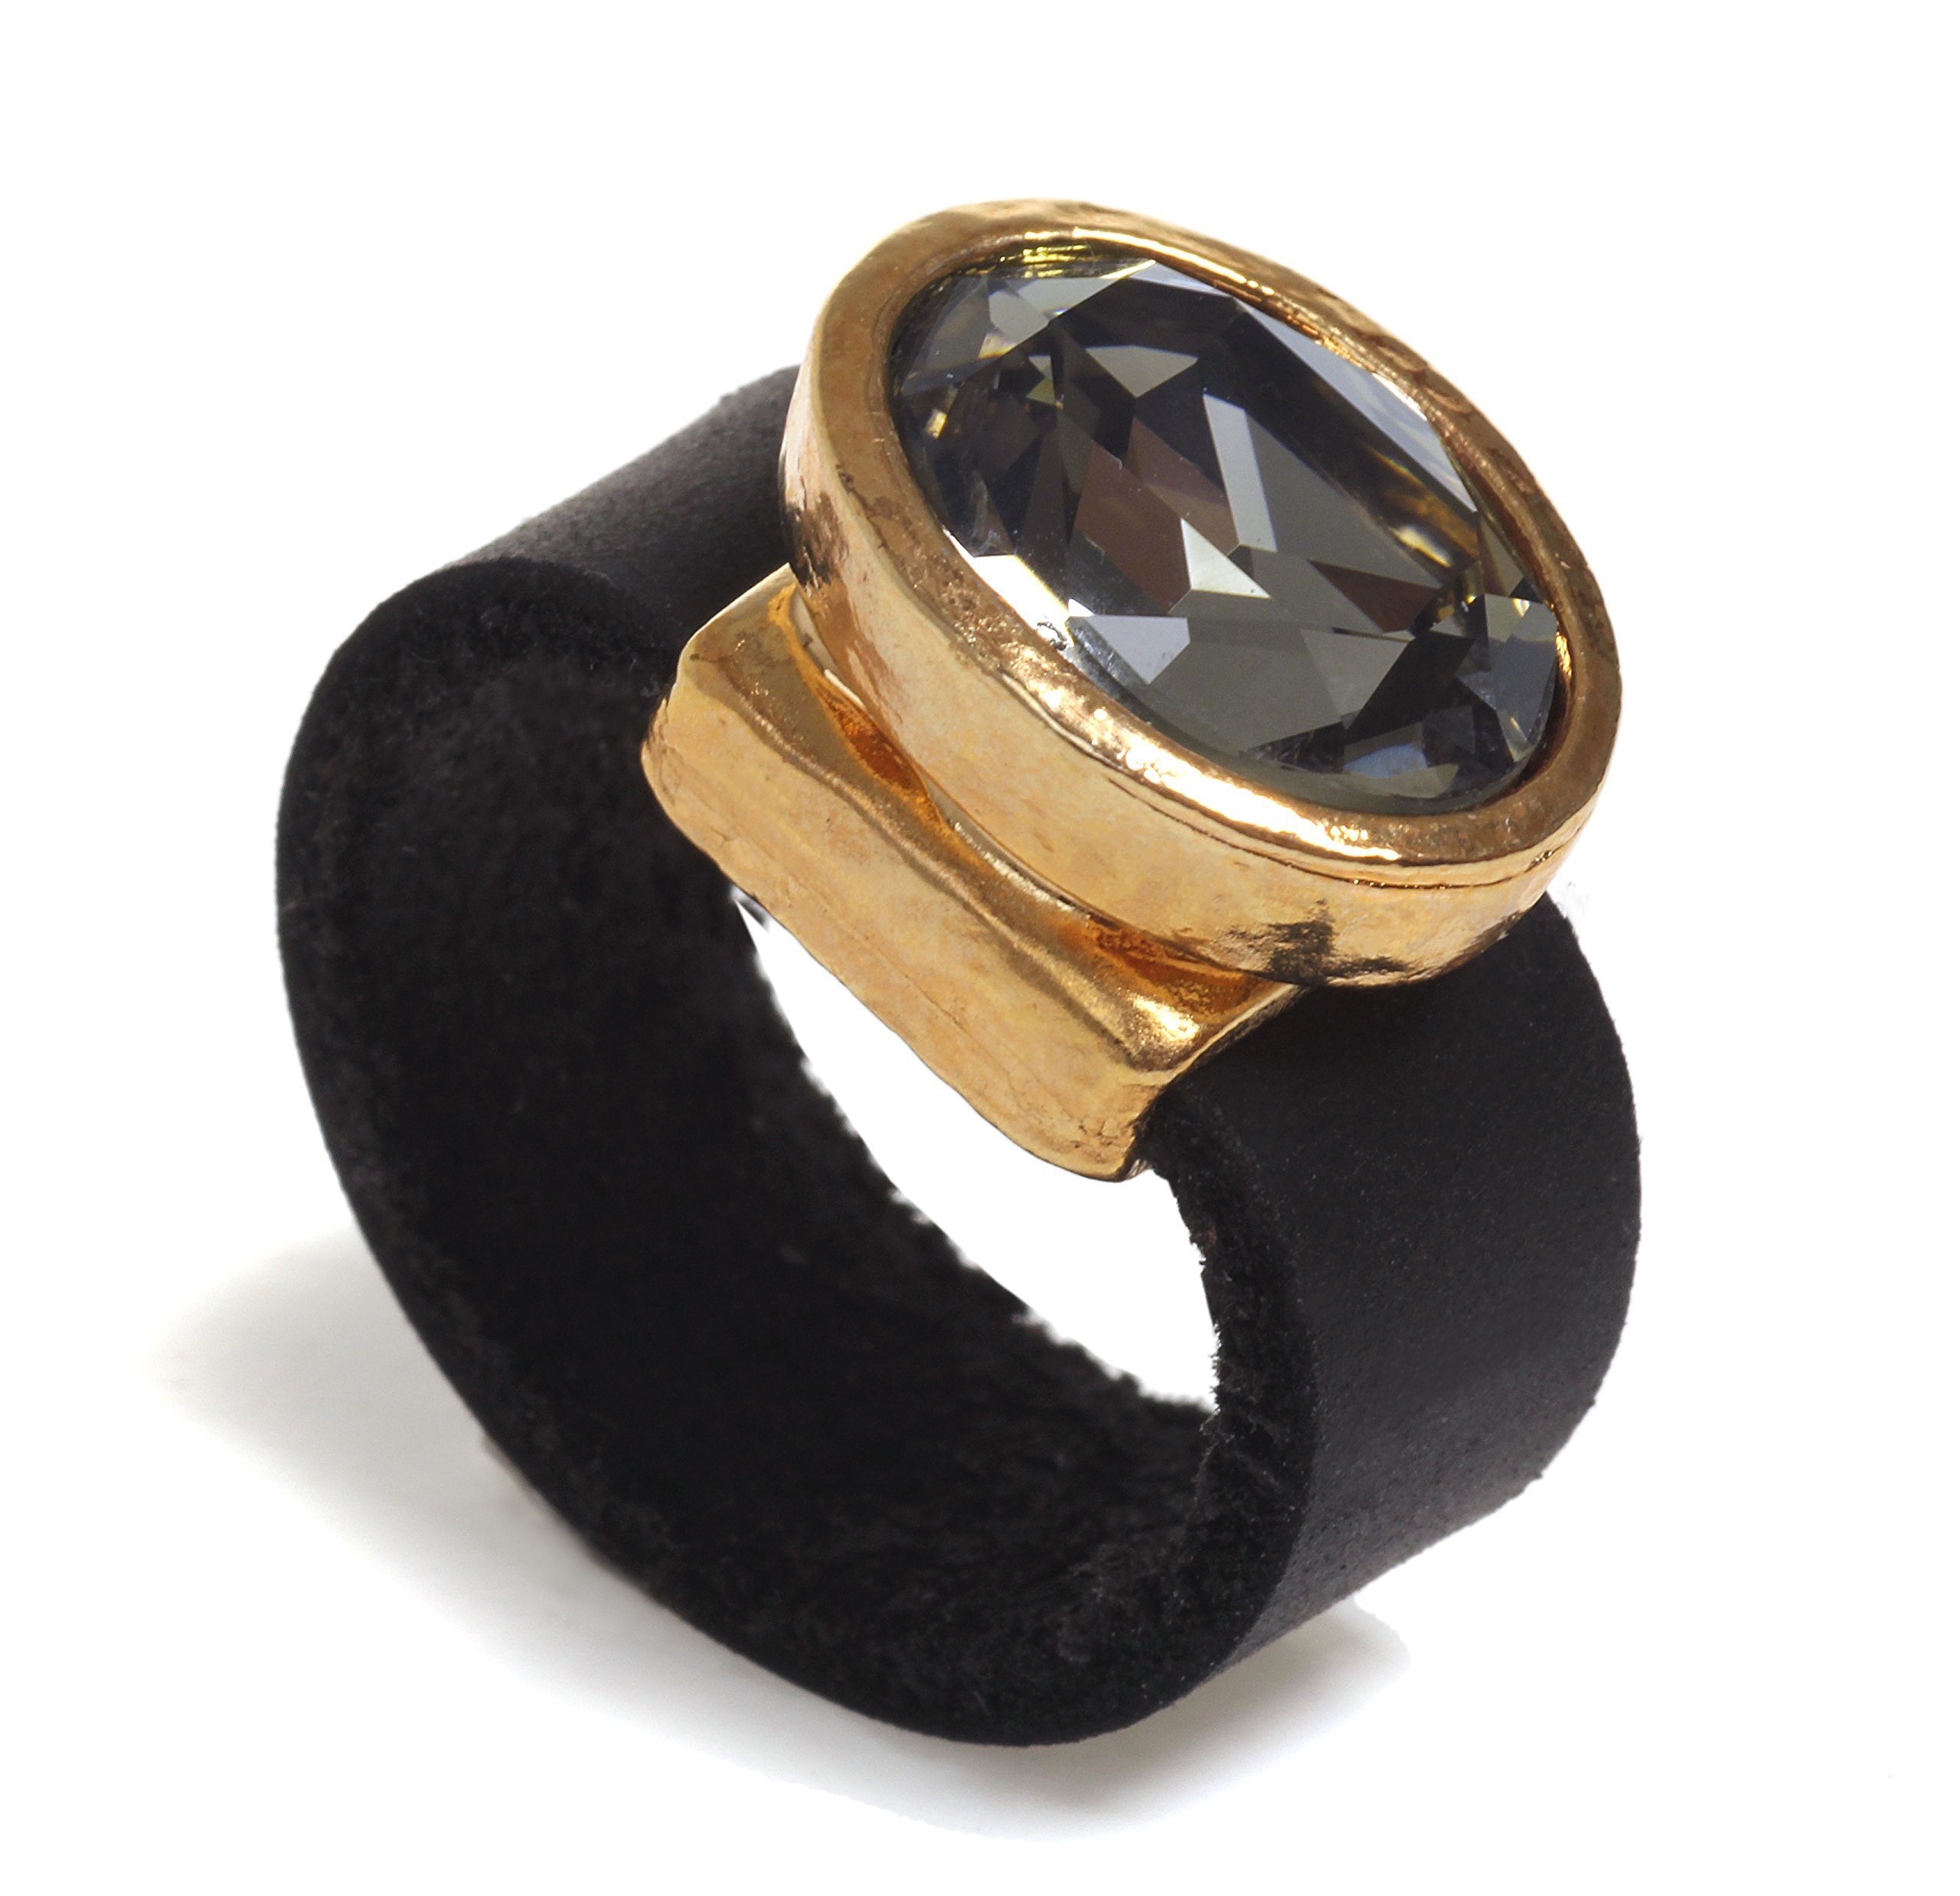 SEA Smadar Designed Black Diamond Swaroski Crystal, Black Leather And 24k Gold Plated Oval Eyecatcher Ring